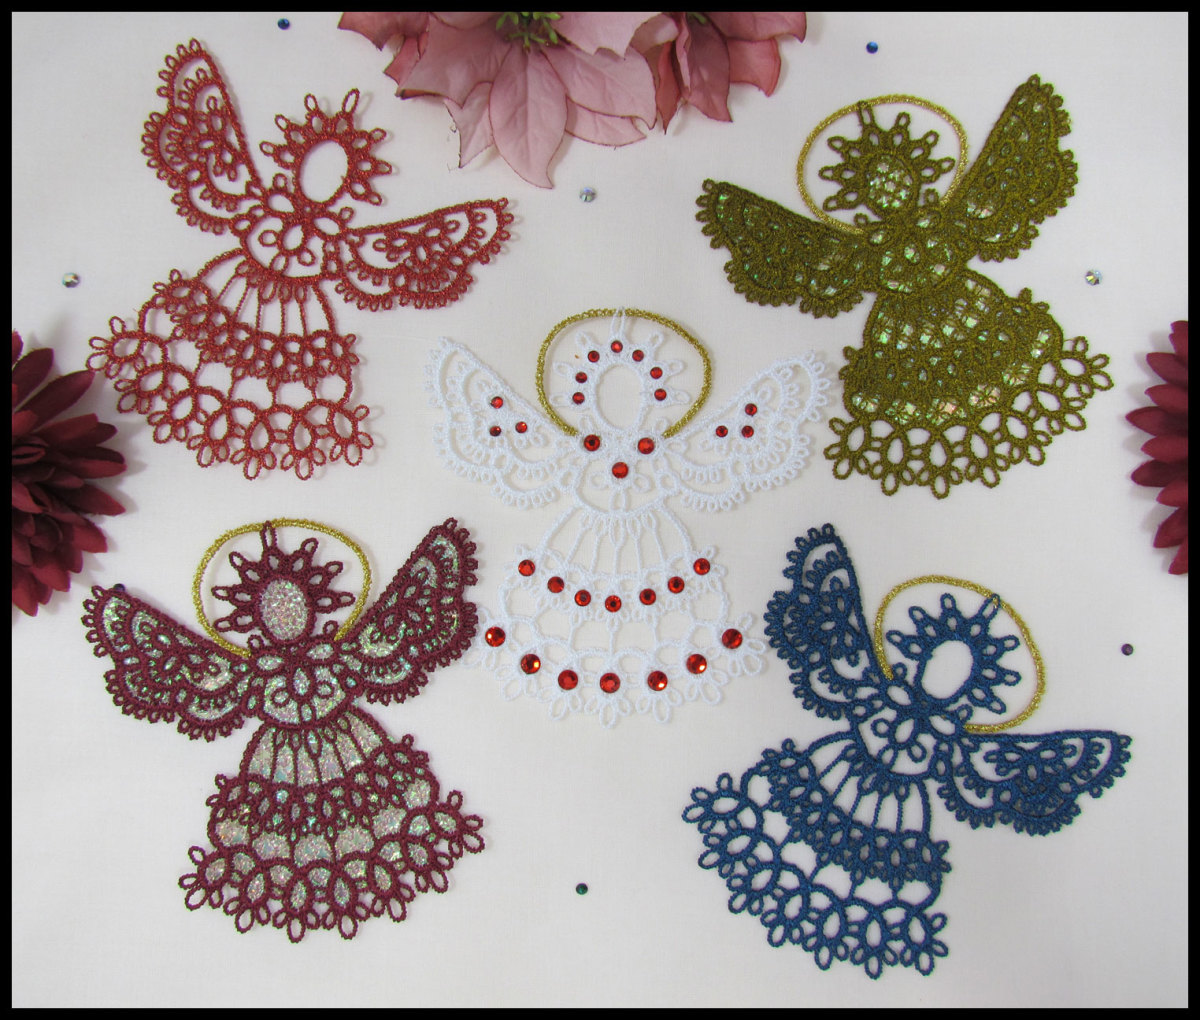 Angels Made by Tatting